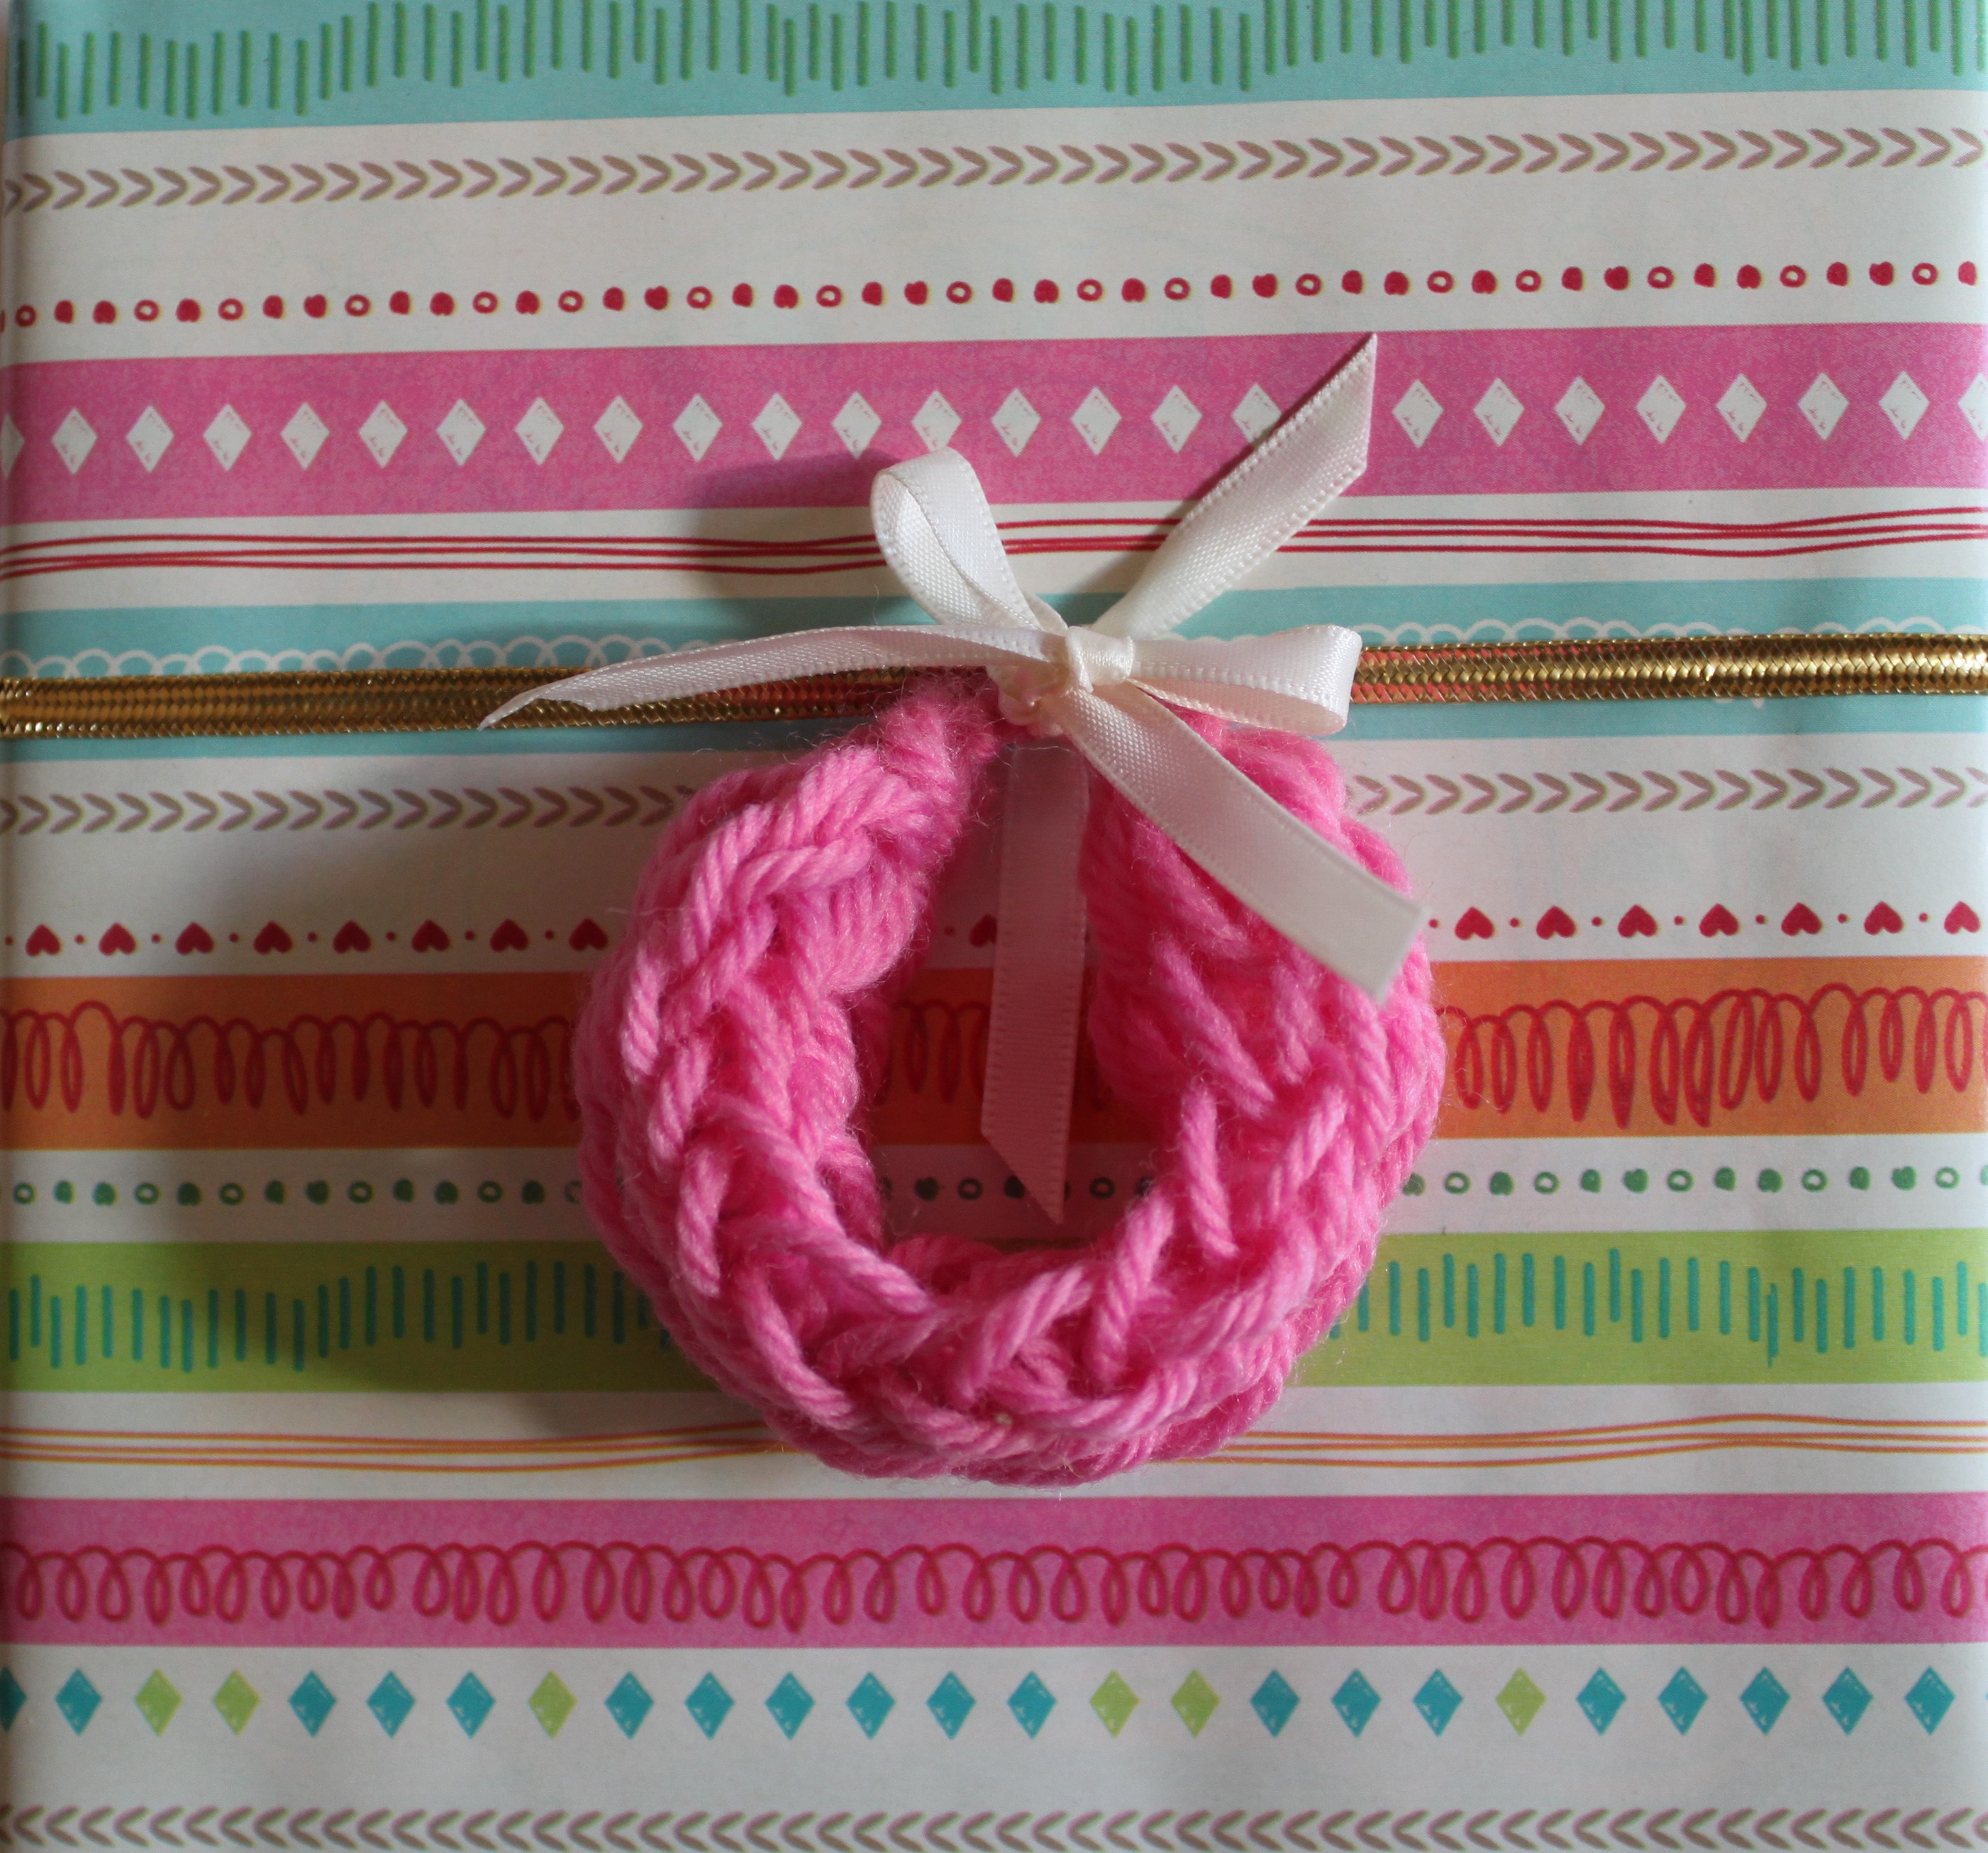 Toilet Paper Roll Knitting Nancy Idea #4: Wreath Ornaments | My ...